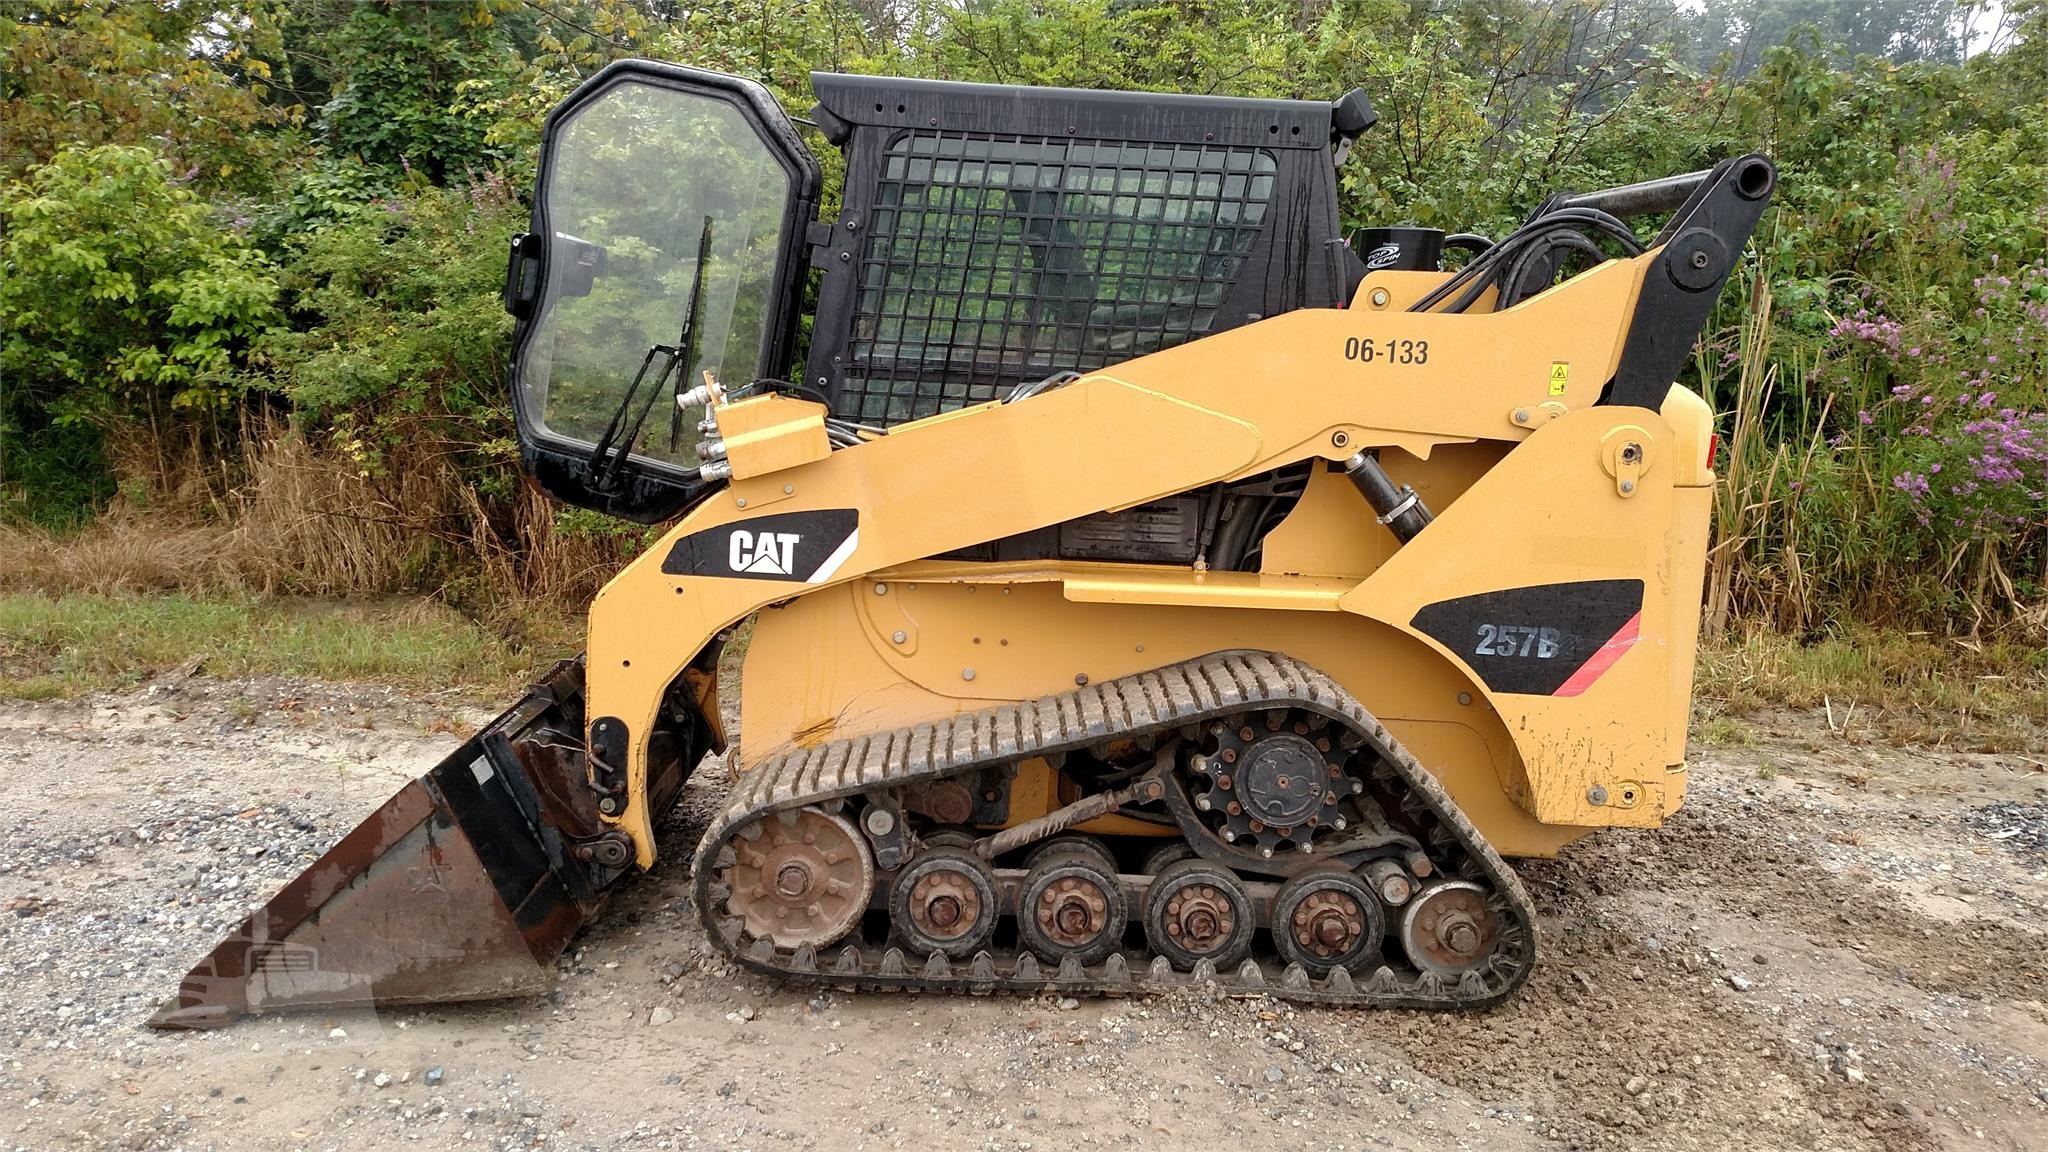 2009 CATERPILLAR 257B2 TRACK LOADER LIKE NEW WITH ONLY 2050 ORIGINAL HOURS HIGH FLOW AUXILIARY H